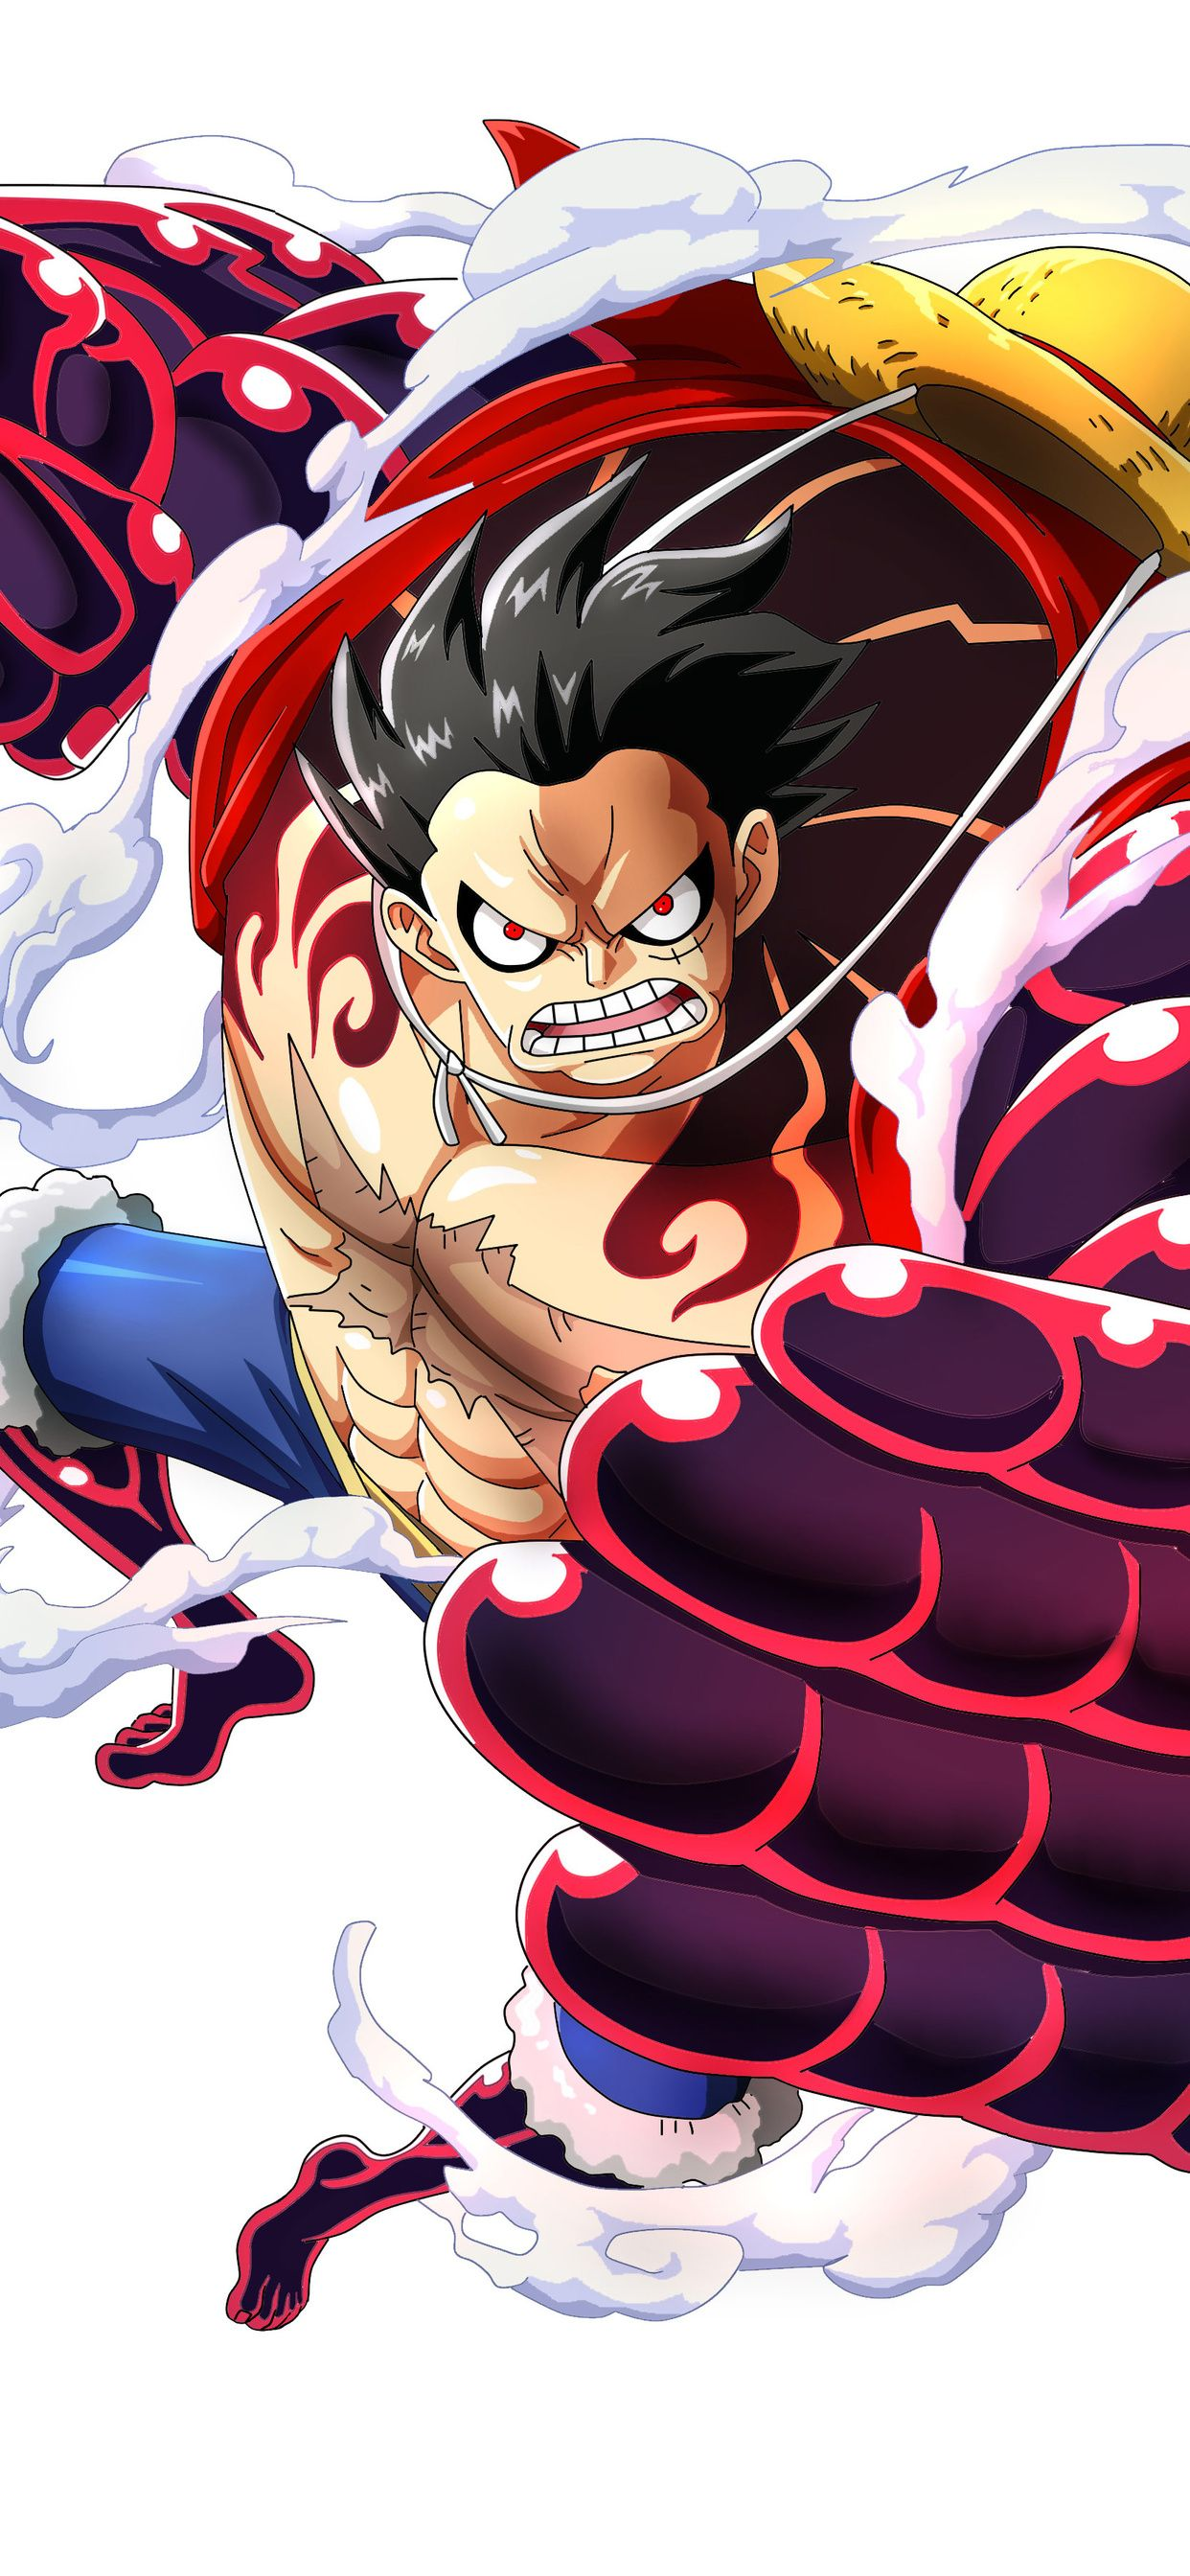 One Piece Wallpaper Iphone Xs Max Anime Wallpaper in